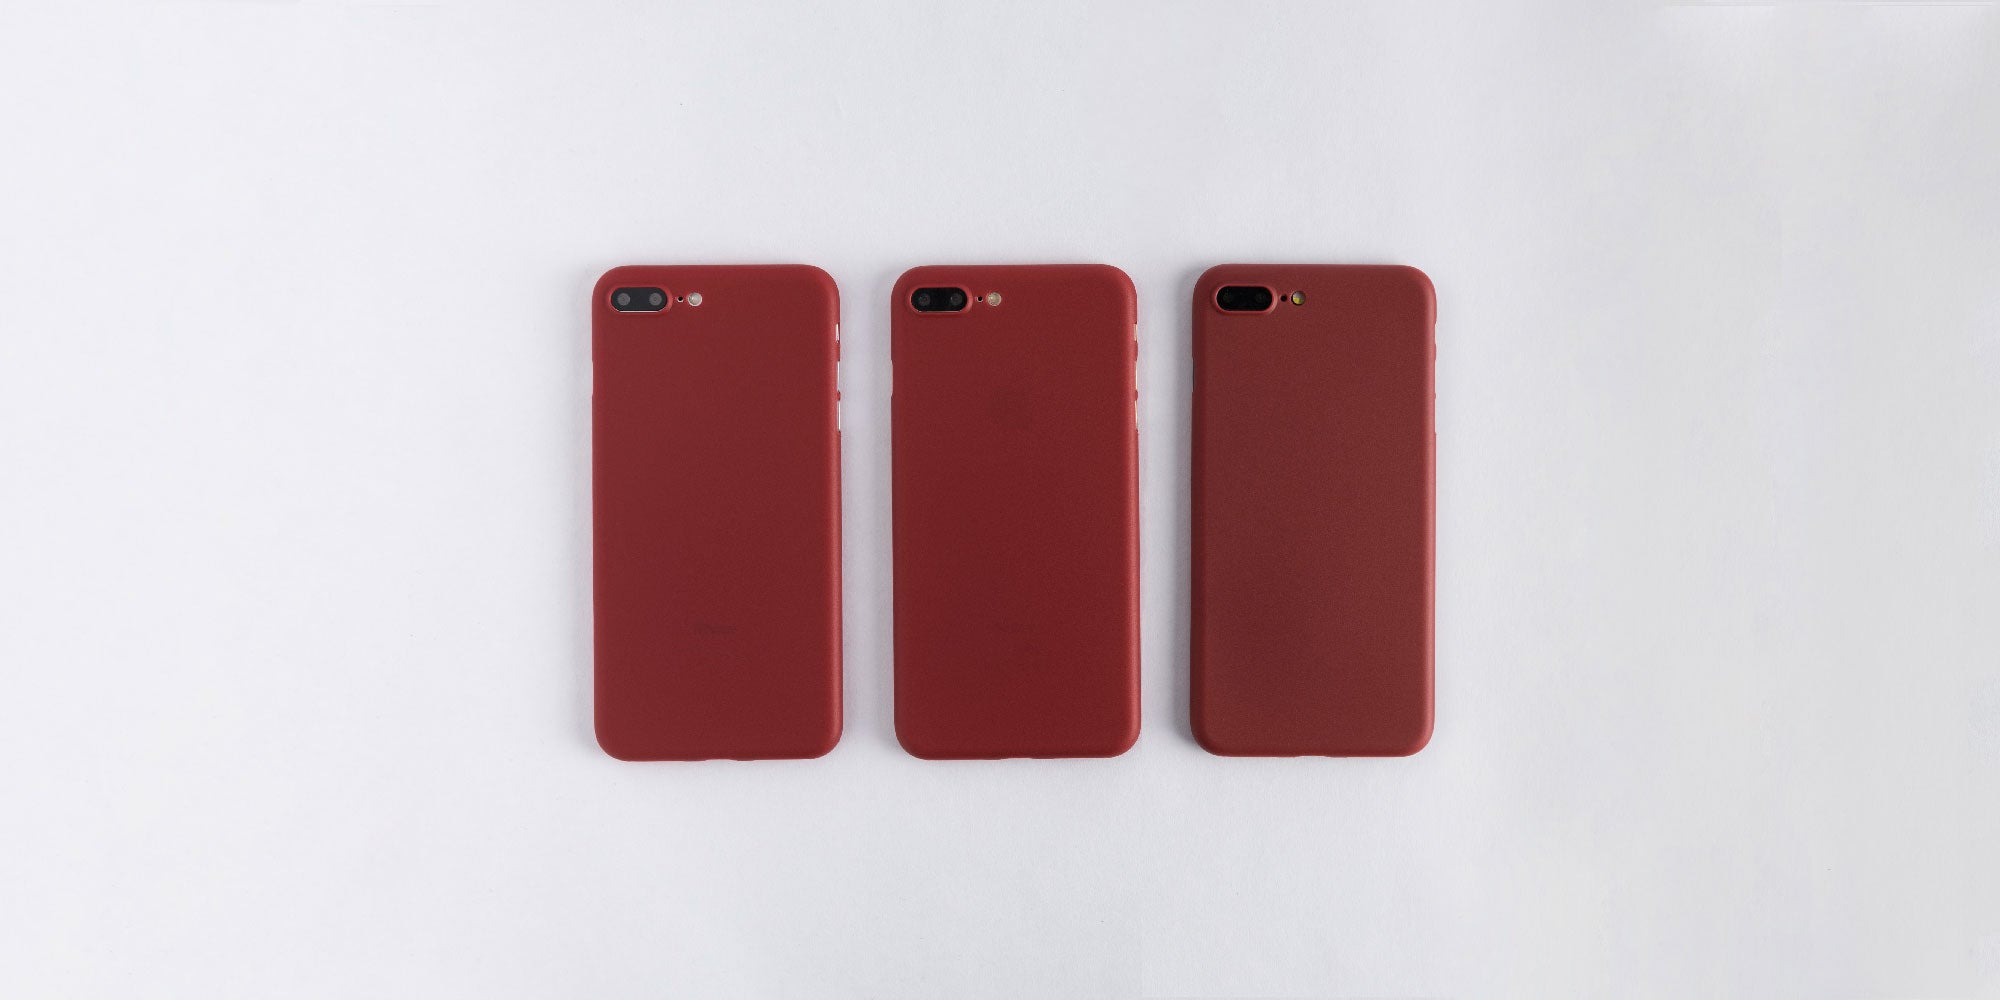 totallee burgundy red case on Space Grey, Silver, and Gold iPhone 8